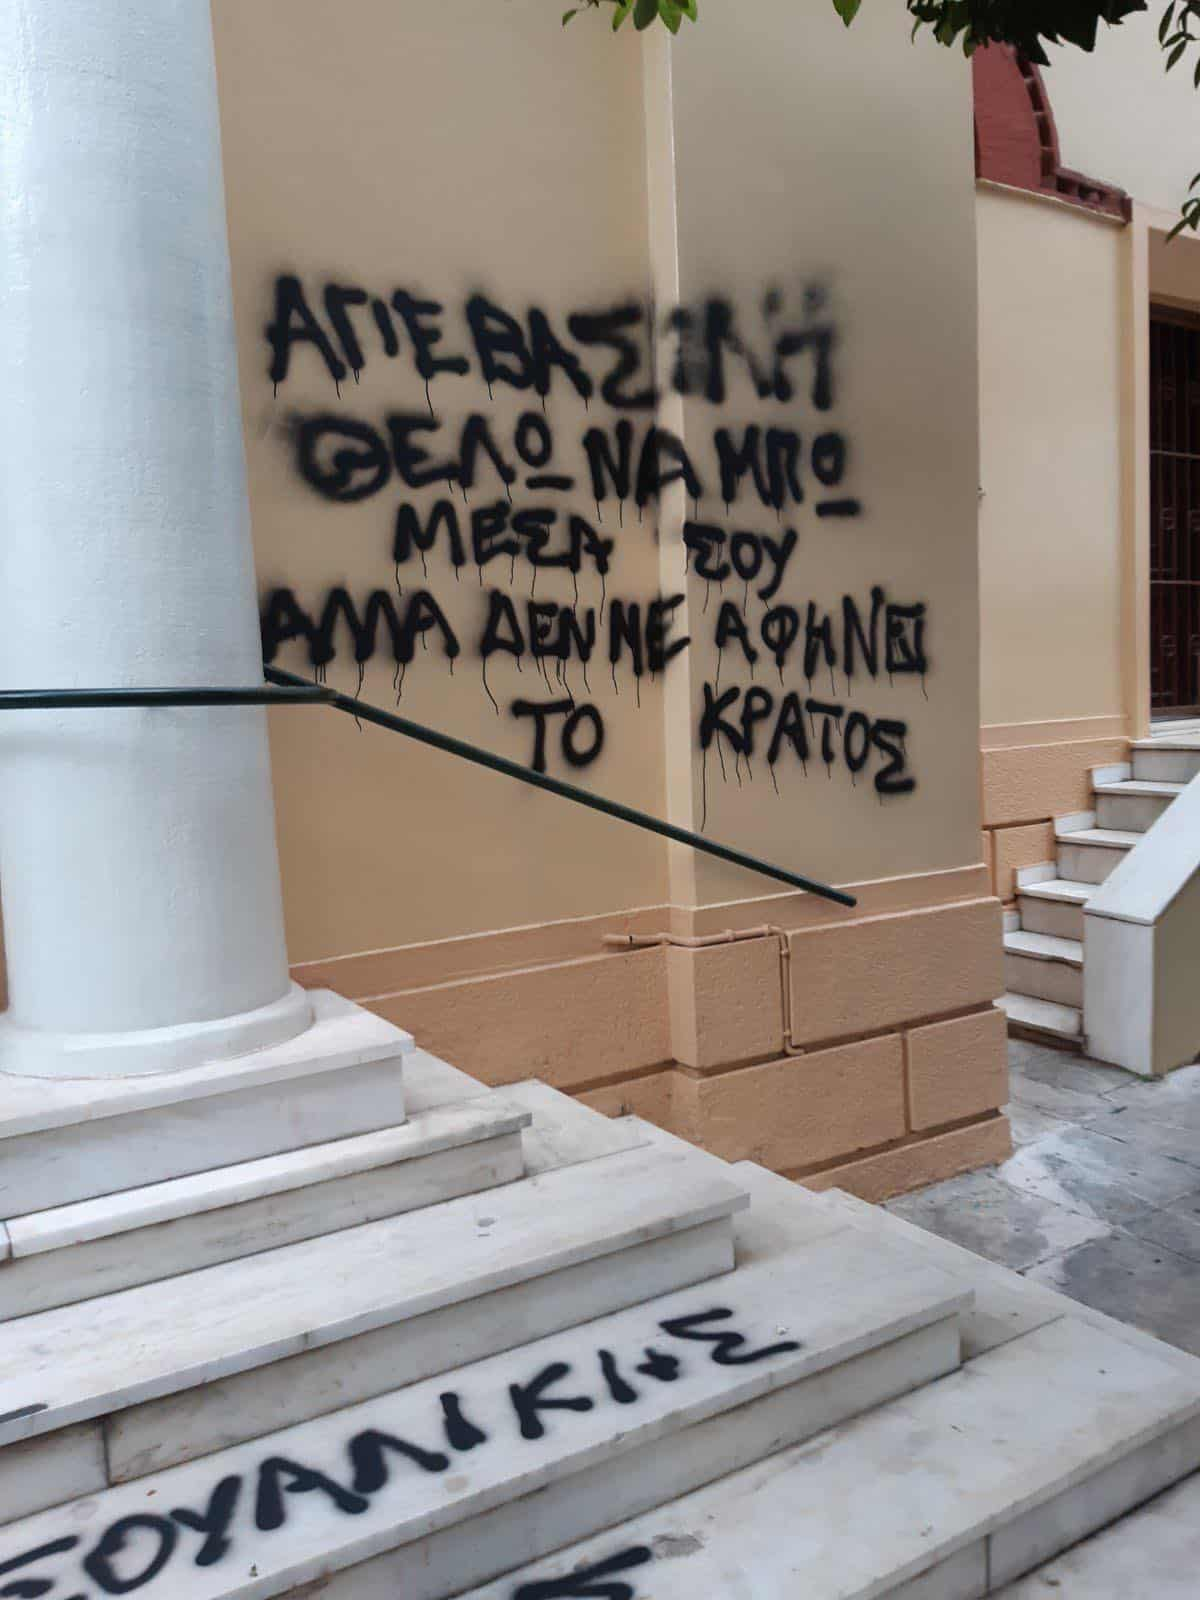 Anarchists vandalise church in Athens with vulgar slogans (VIDEO) 5